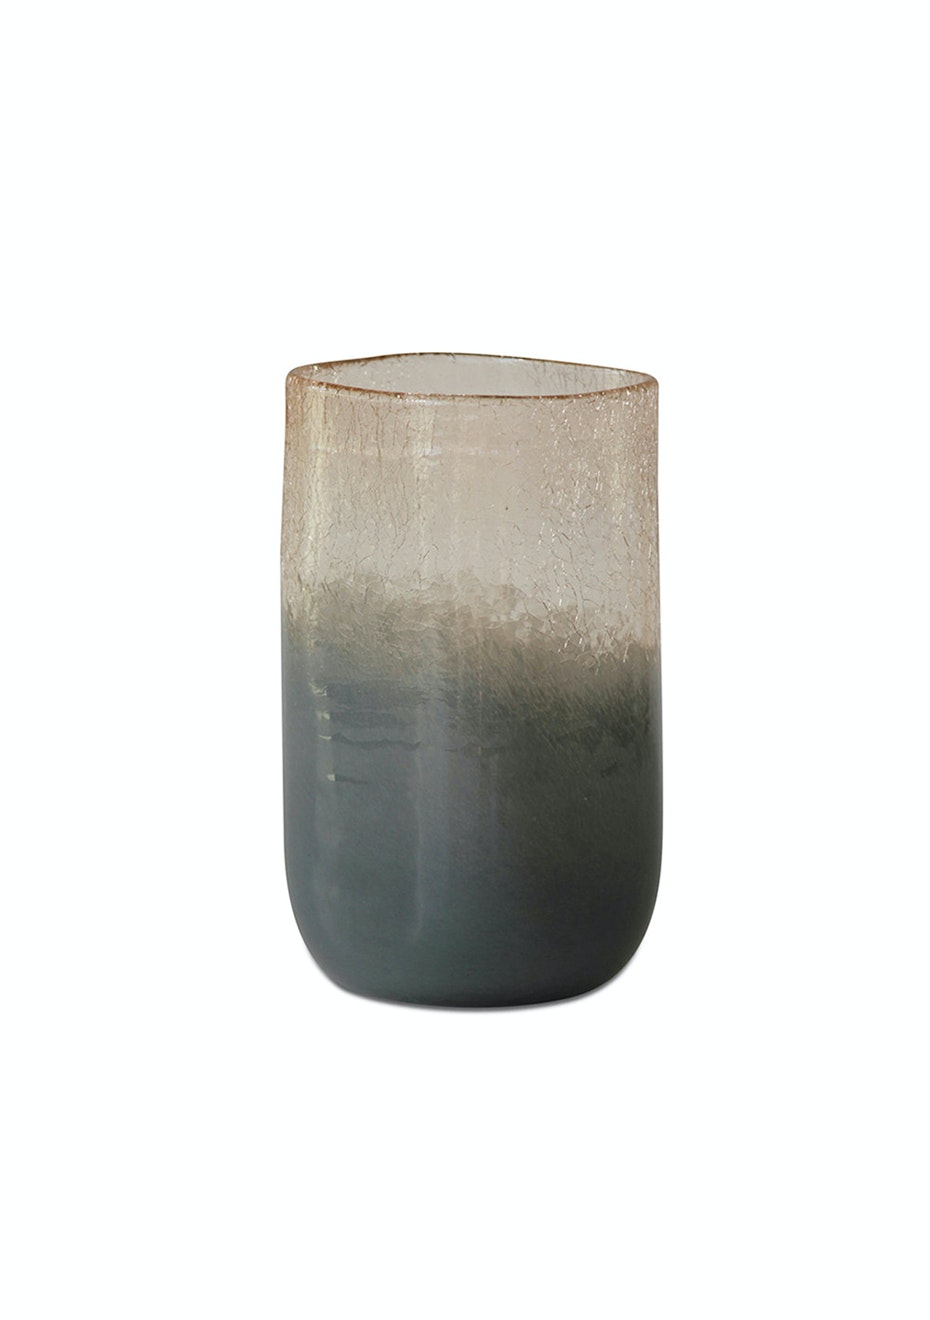 Me & My Trend - Large Peach to Lilac Ombre Vase